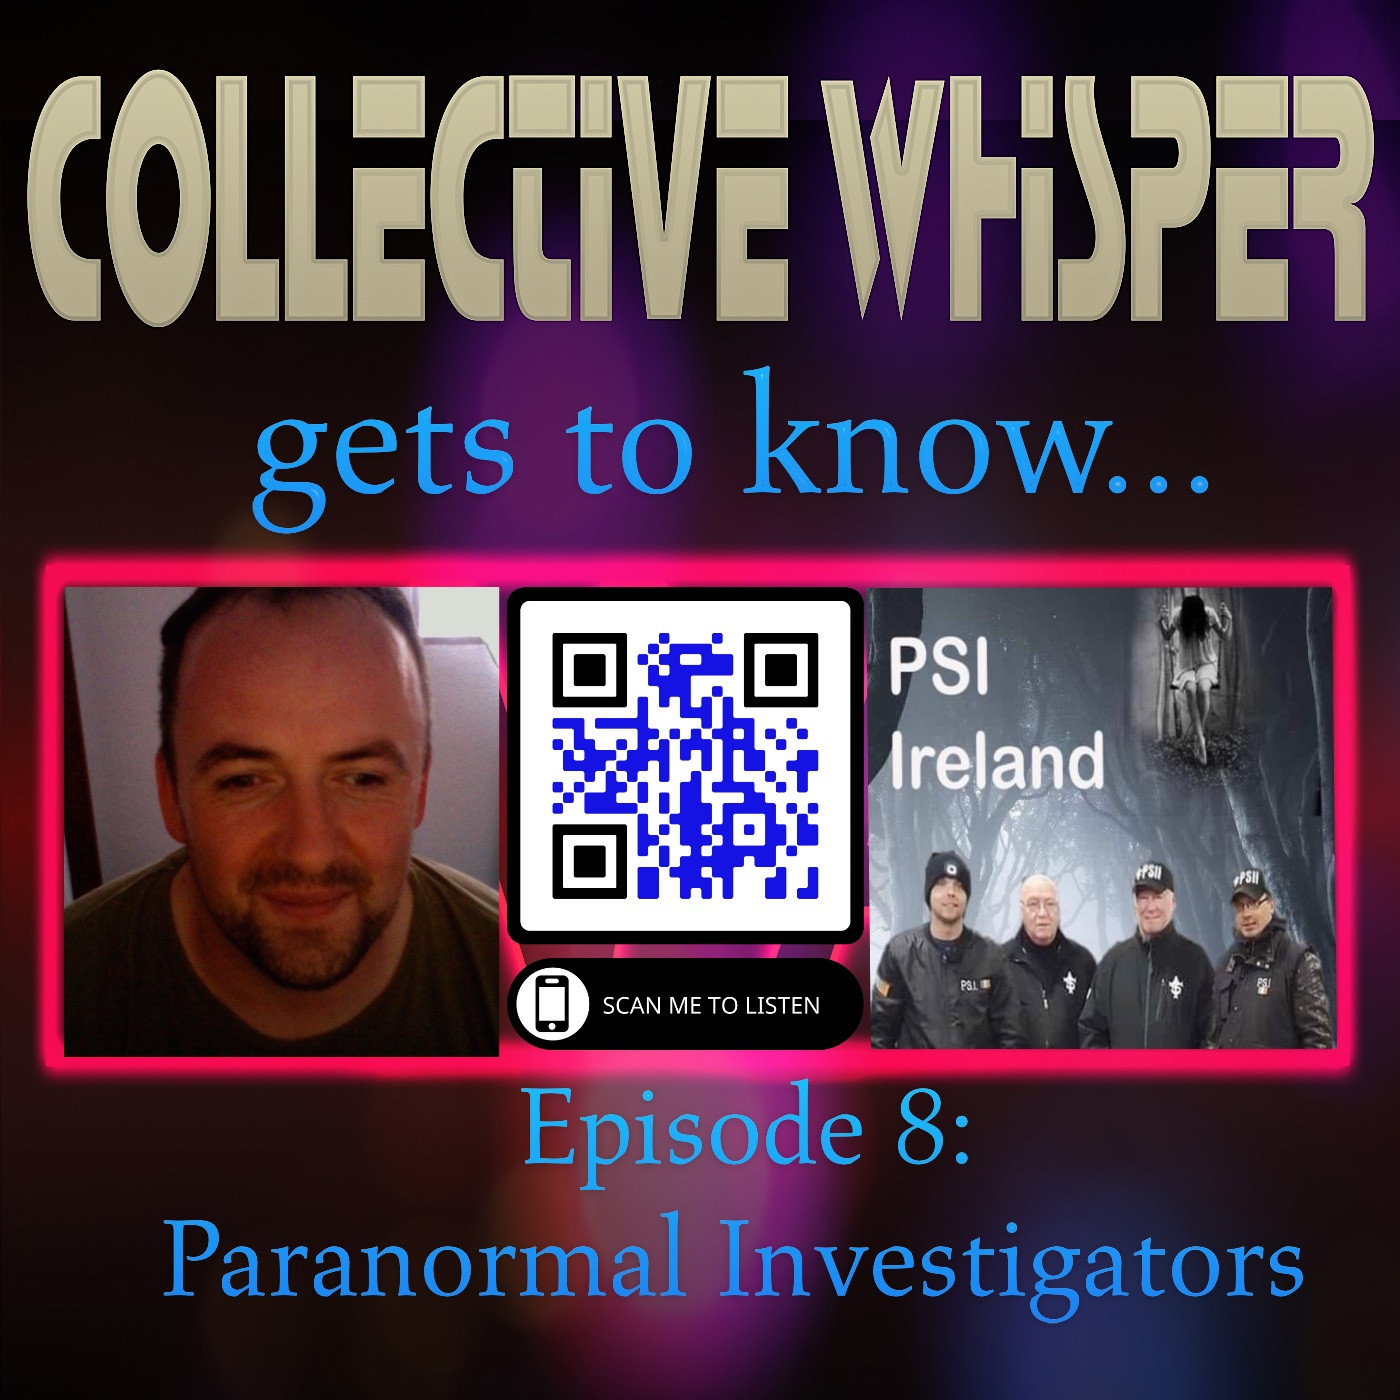 Collective Whisper gets to know.....Paranormal Investigators